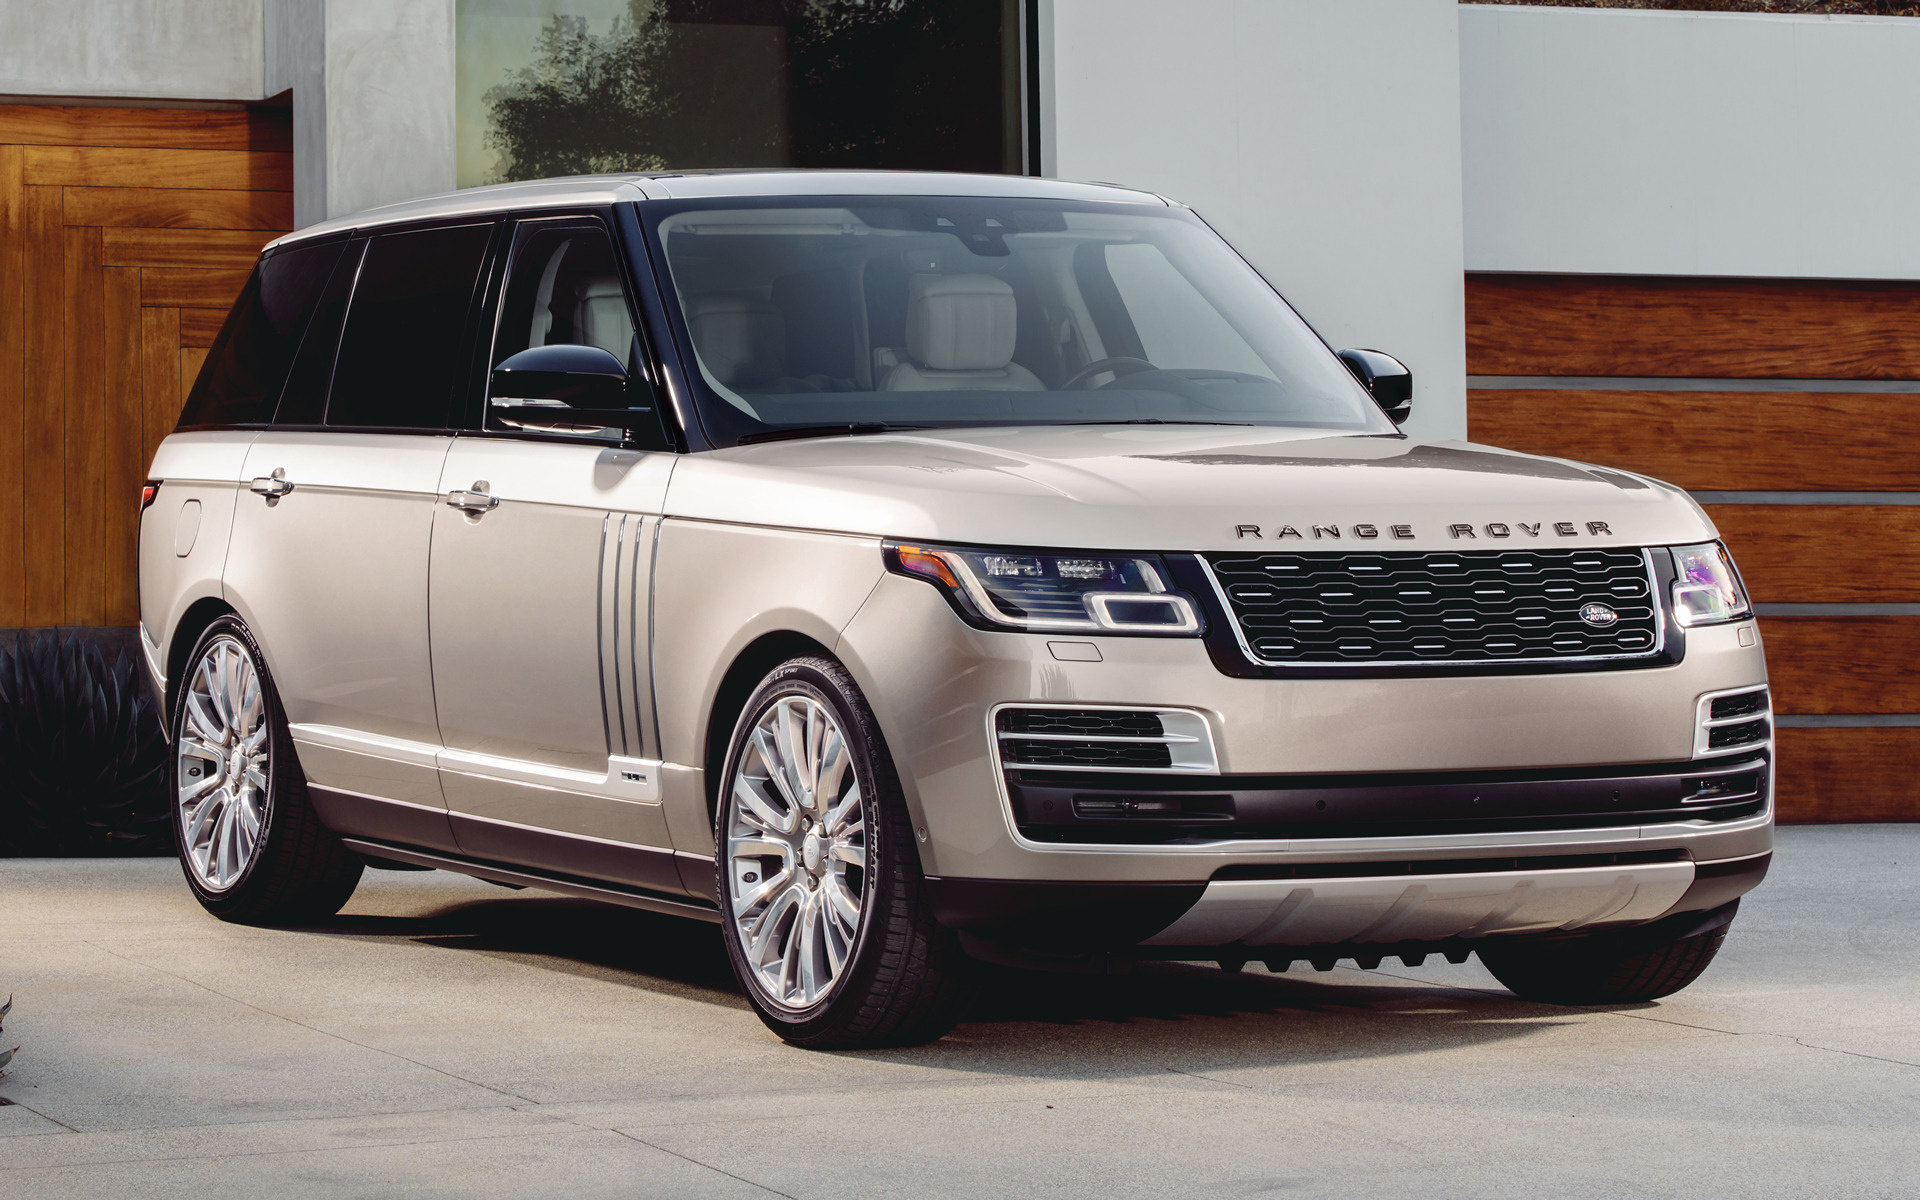 Range Rover SVAutobiography [LWB] (2018) US Wallpapers and HD Images - Car Pixel